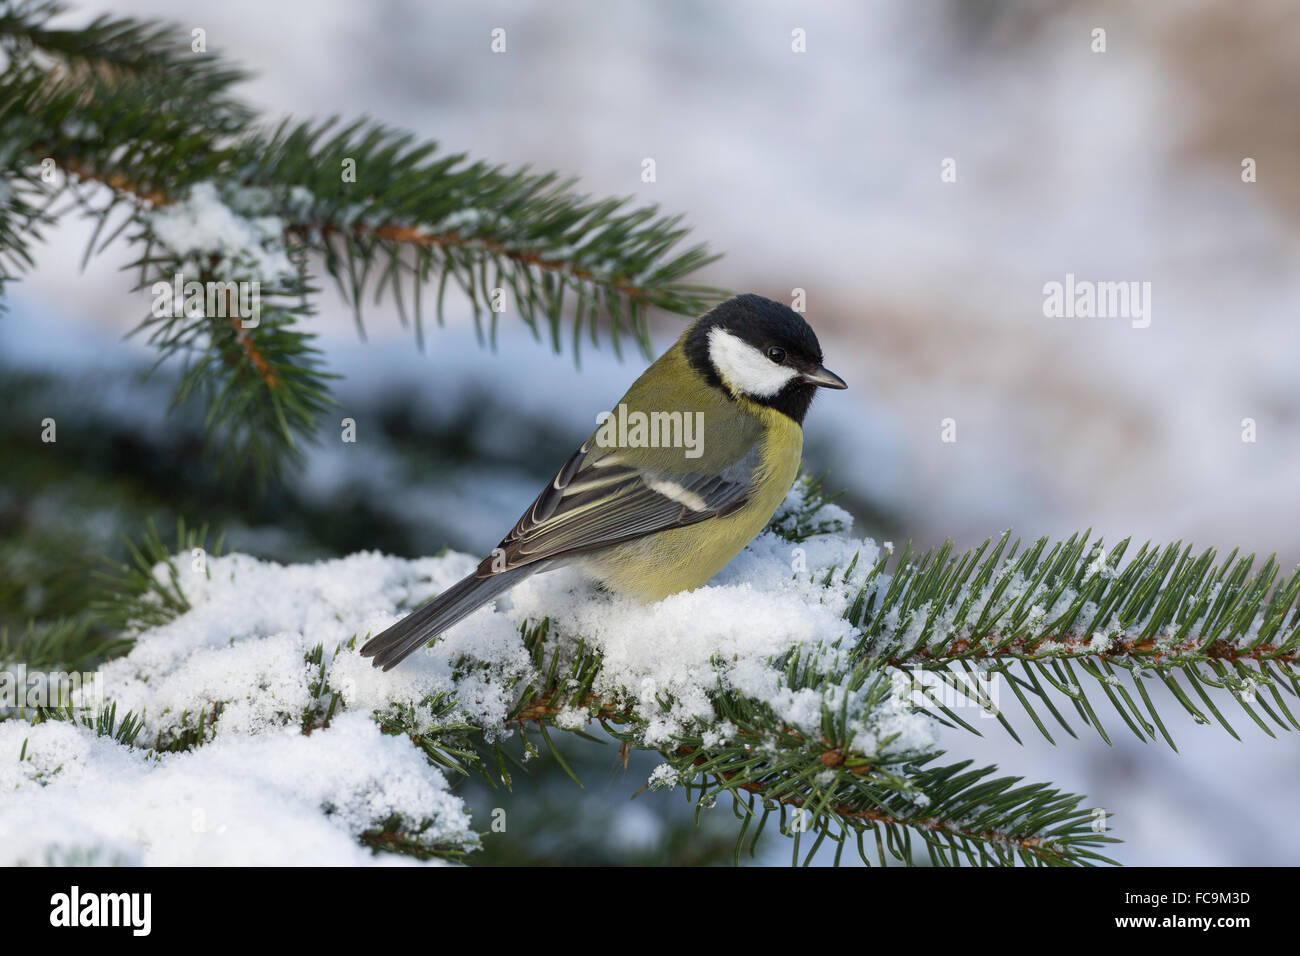 great tit winter snow kohlmeise schnee winter kohl meise stock photo royalty free image. Black Bedroom Furniture Sets. Home Design Ideas